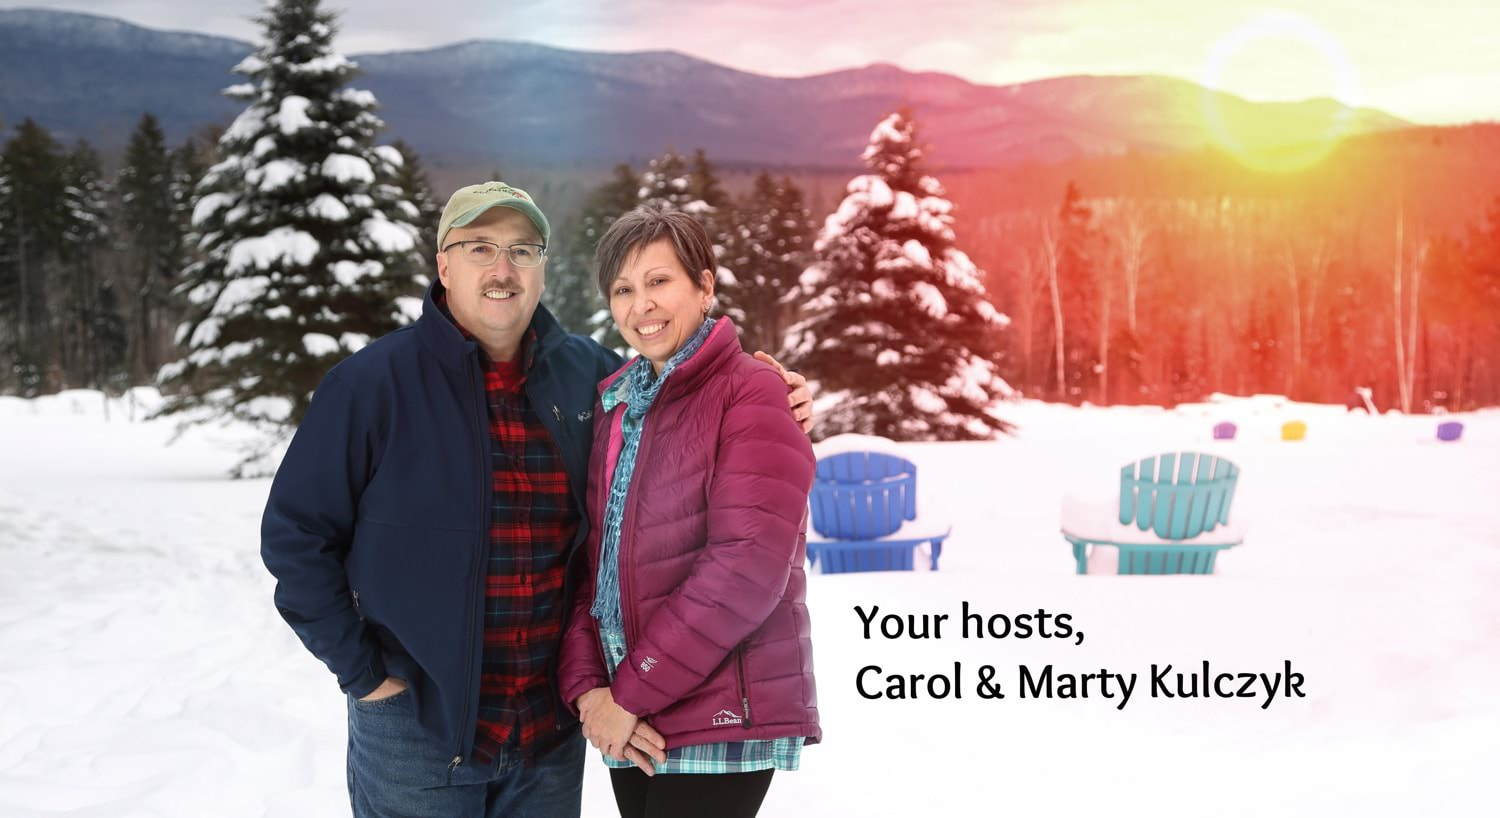 Owners Carl & Marty Kulczyk standing outside amidst snow-covered ground and trees and the sun setting behind the distant hills